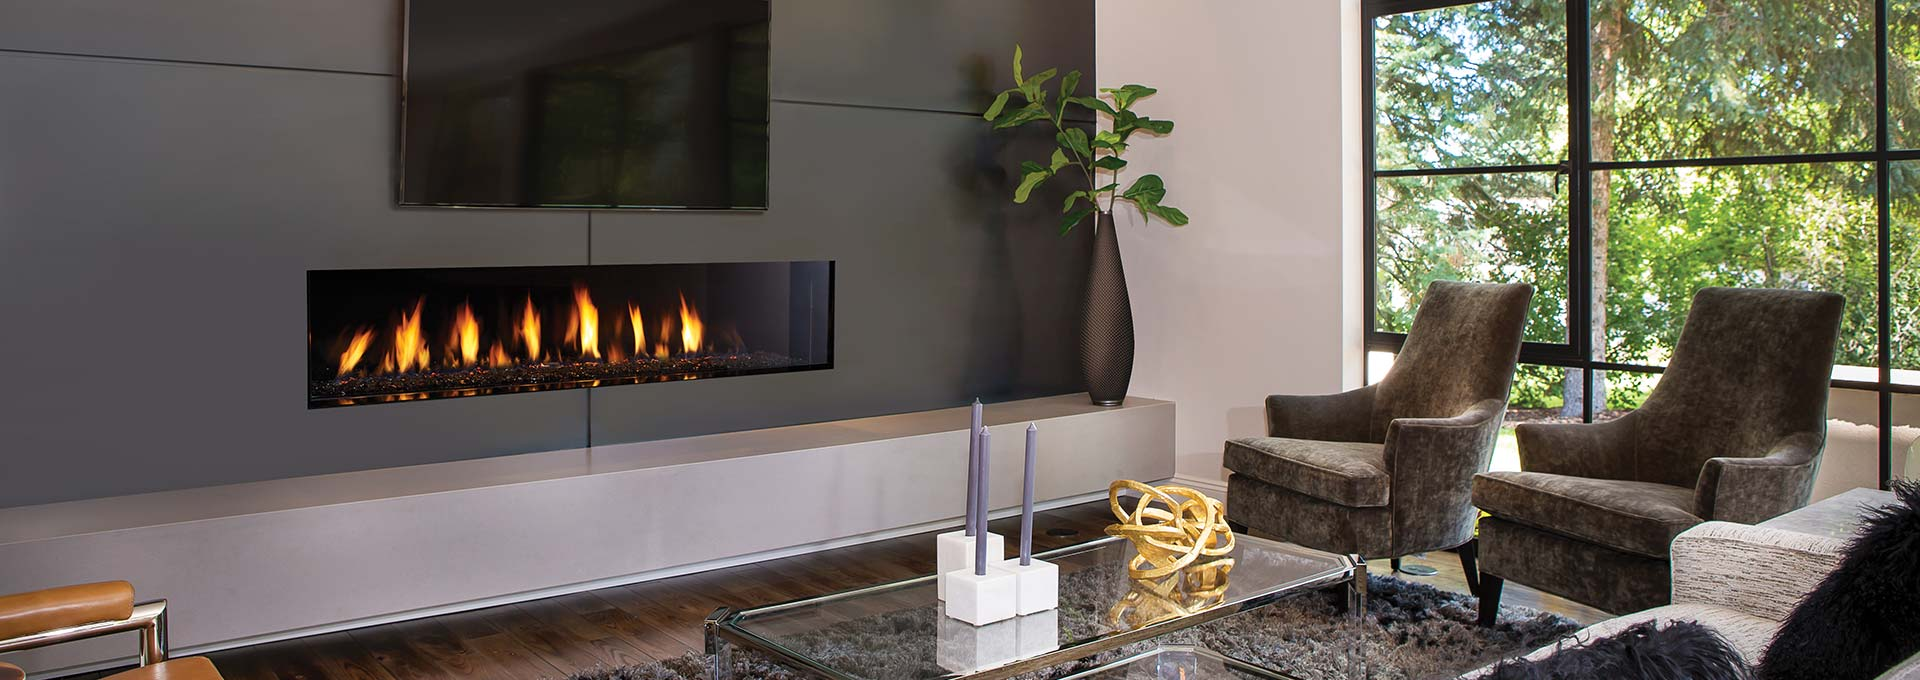 New York View 72 Gas Fireplace-1